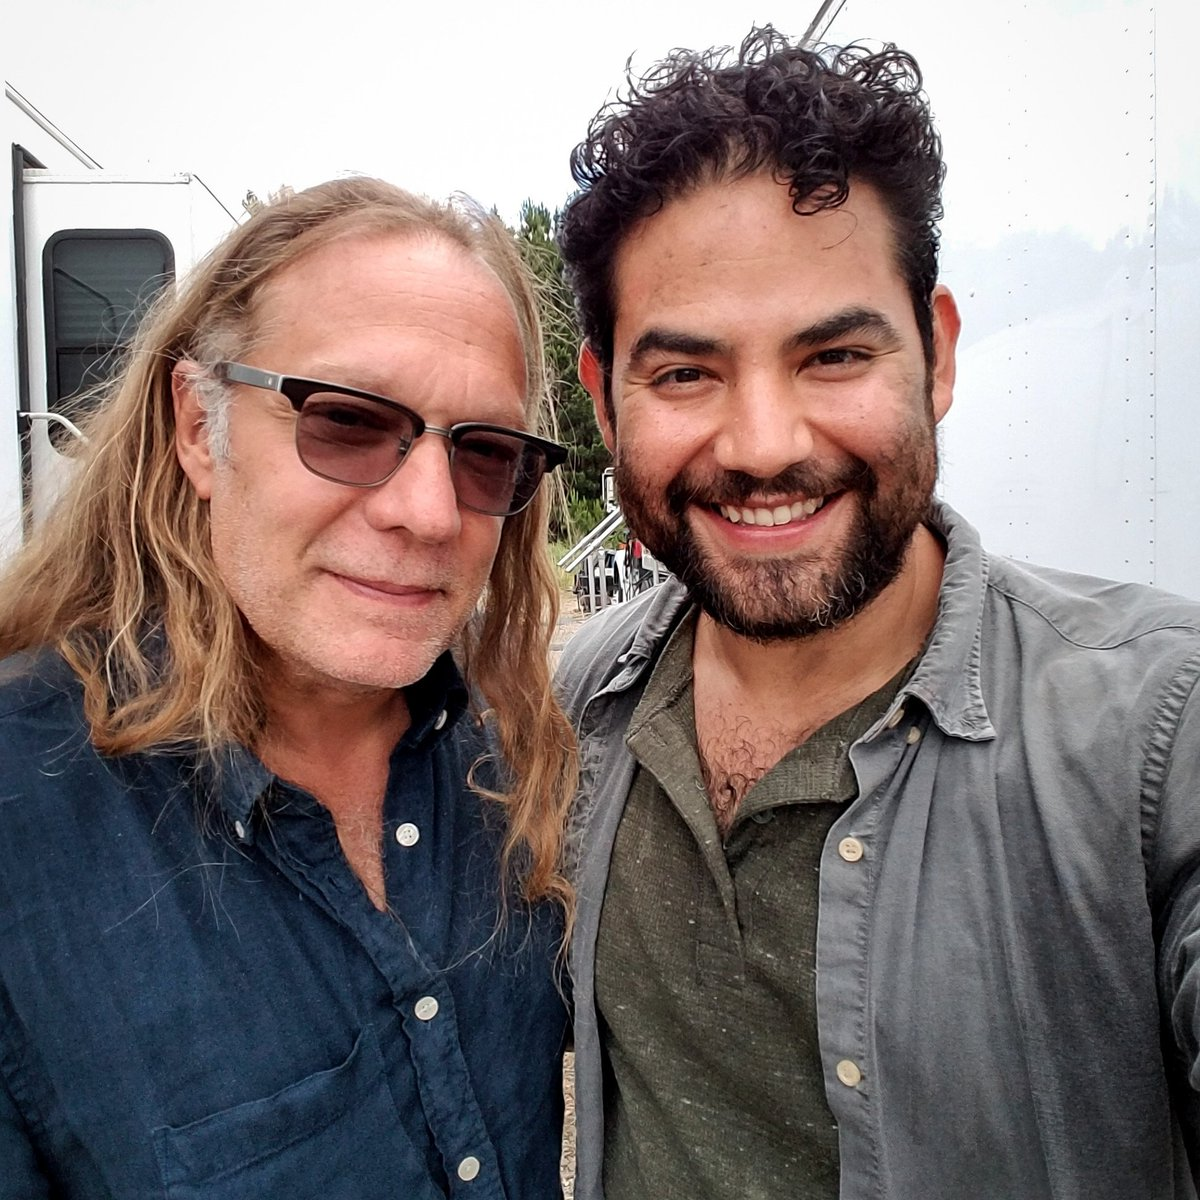 The man himself! Great to see you again @G_Nicotero and glad that you were at the helm for the big #Morales return. #TheWalkingDead  #TWD  #twdseason8 #Morales #MoralesLived  #amc #pr #publicity #actor #actorlife<br>http://pic.twitter.com/QX2lj7fUeC